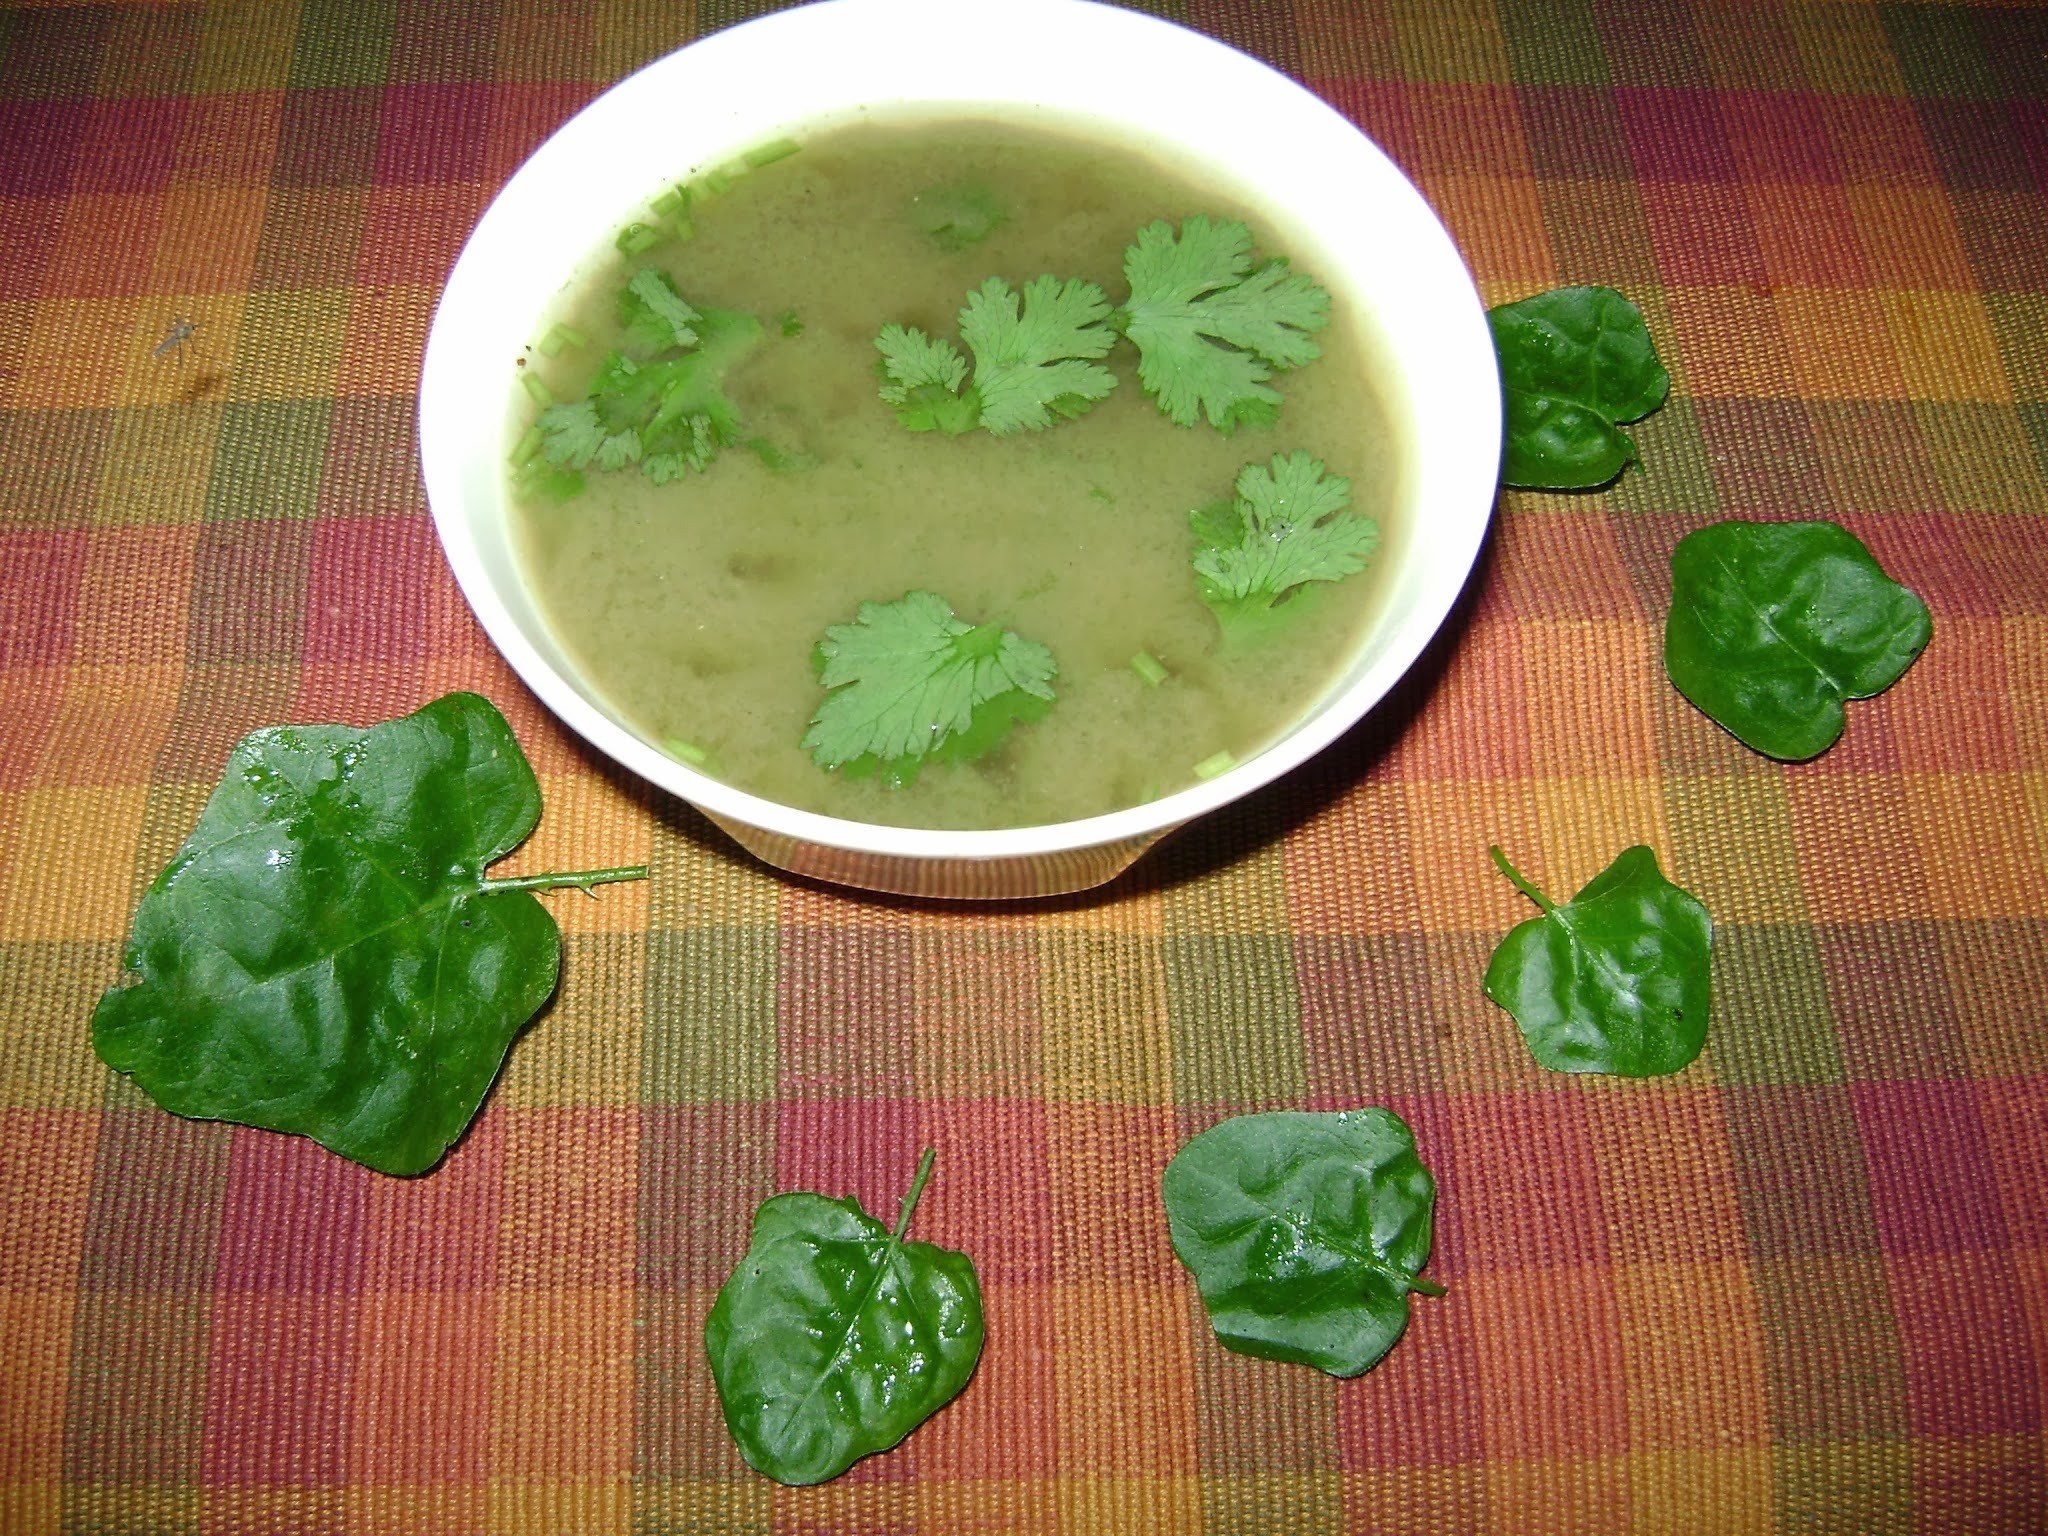 Thuthuvalai soup -a herbal soup